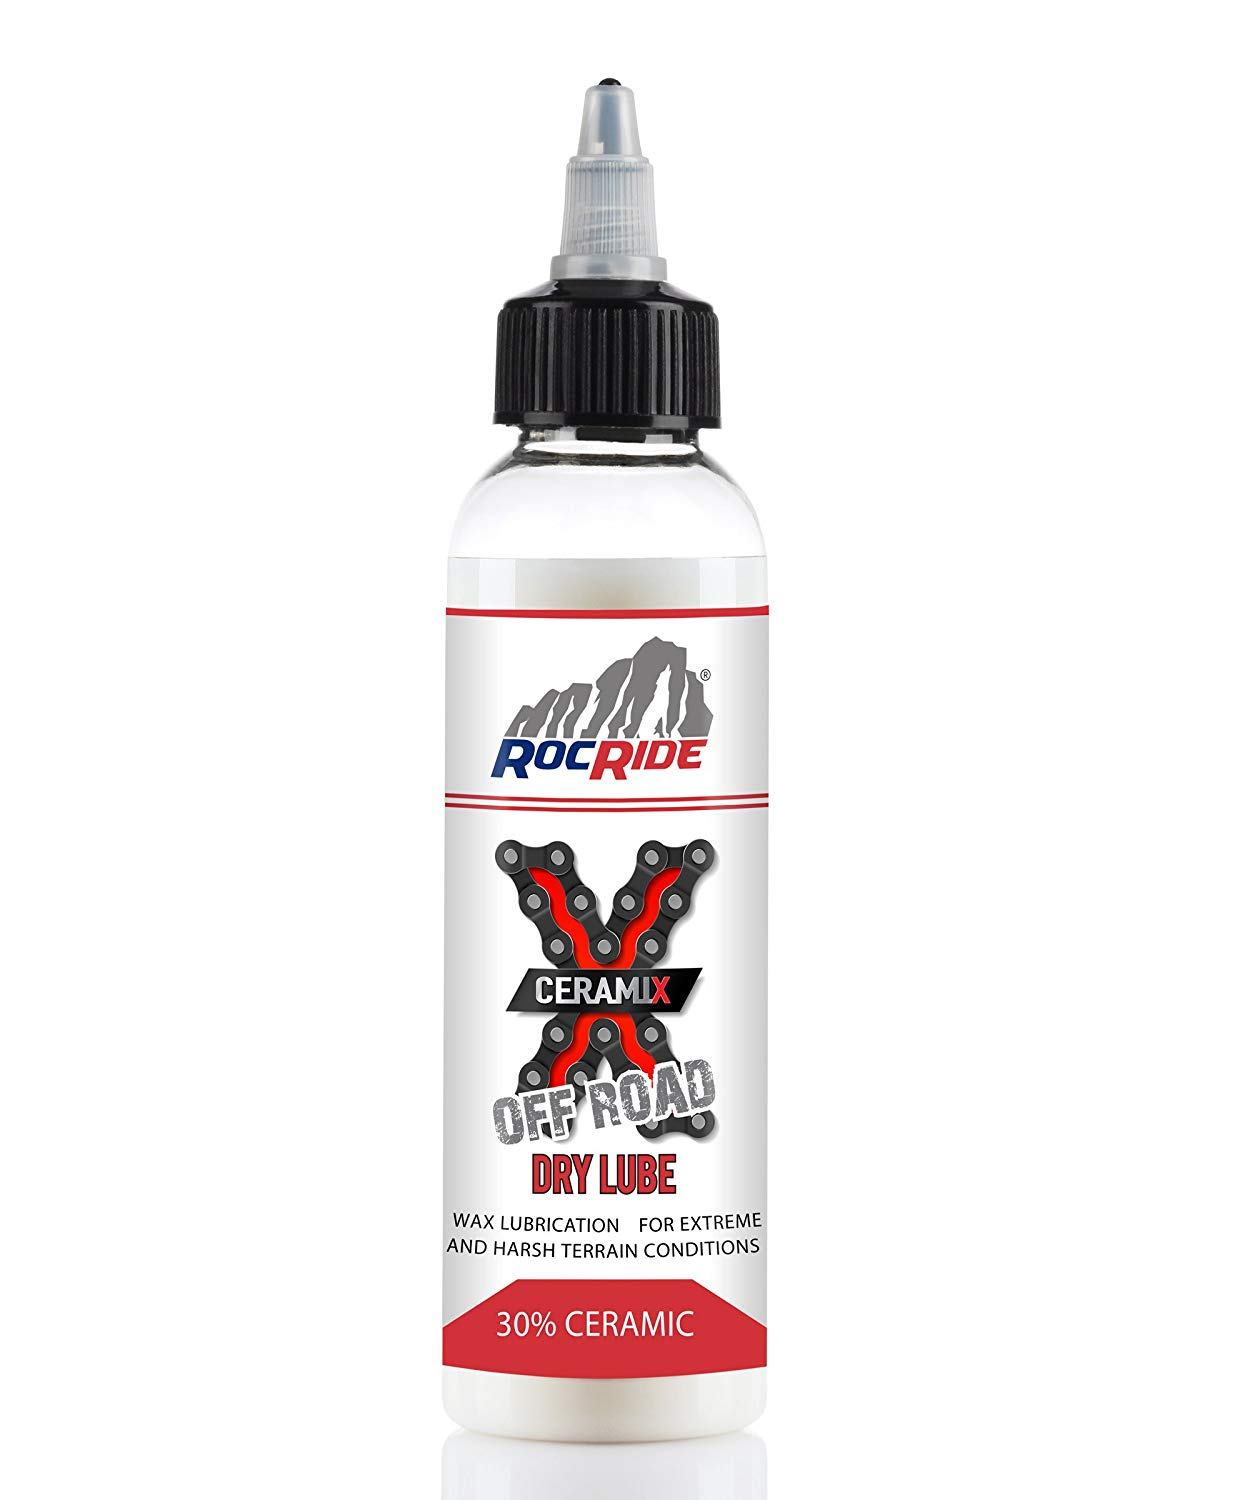 RocRide CERAMIX Off Road Dry Chain Lube Wax Based with PTFE. 3.38oz Bottle.